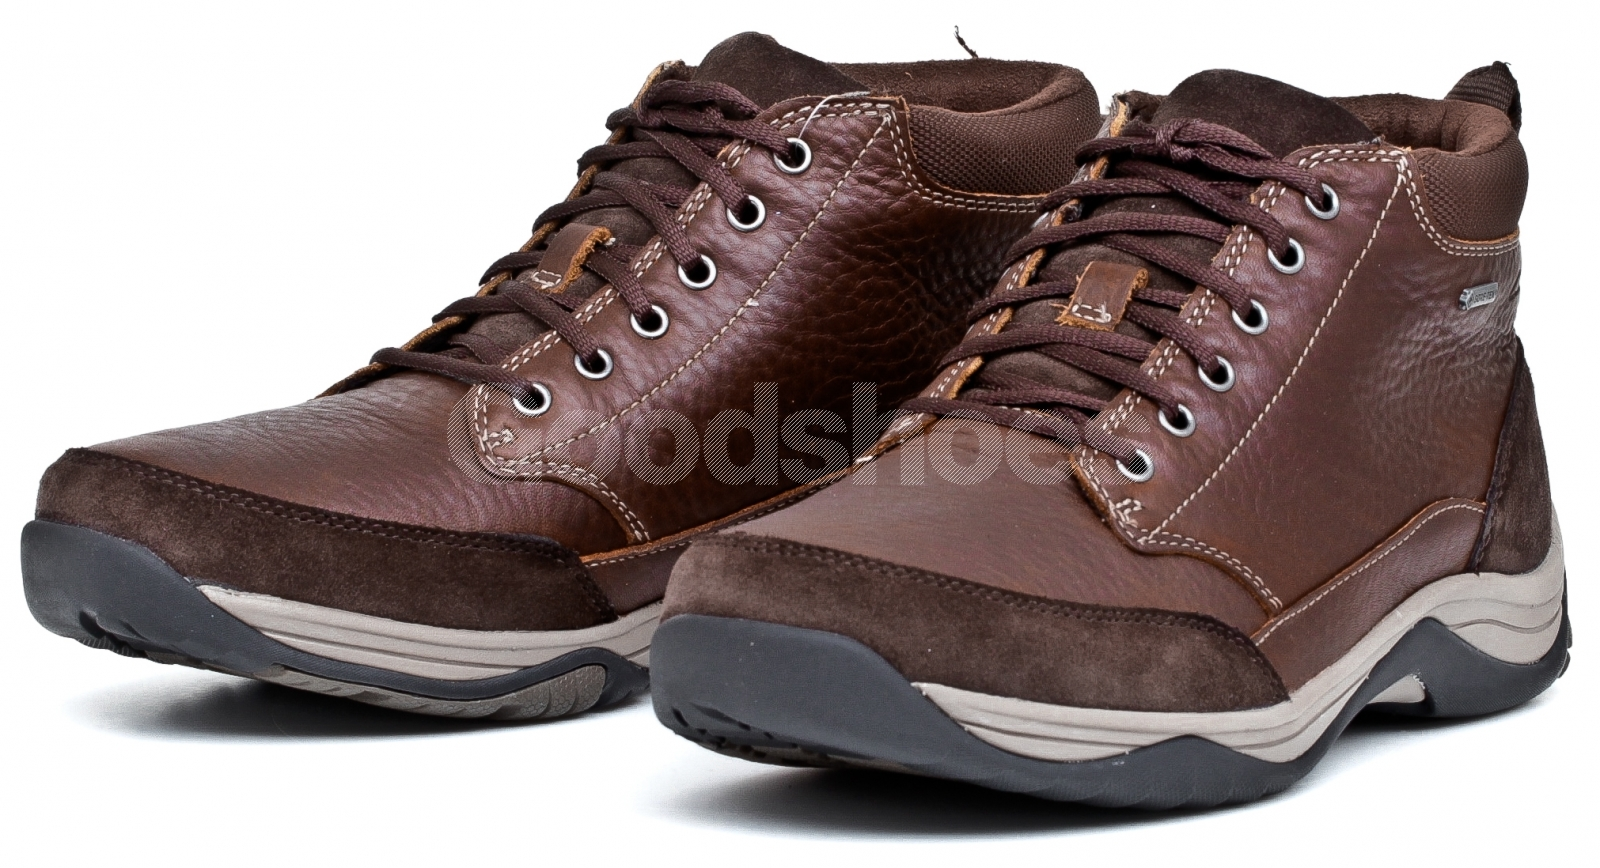 Clarks Outlet Gore Tex Shoes